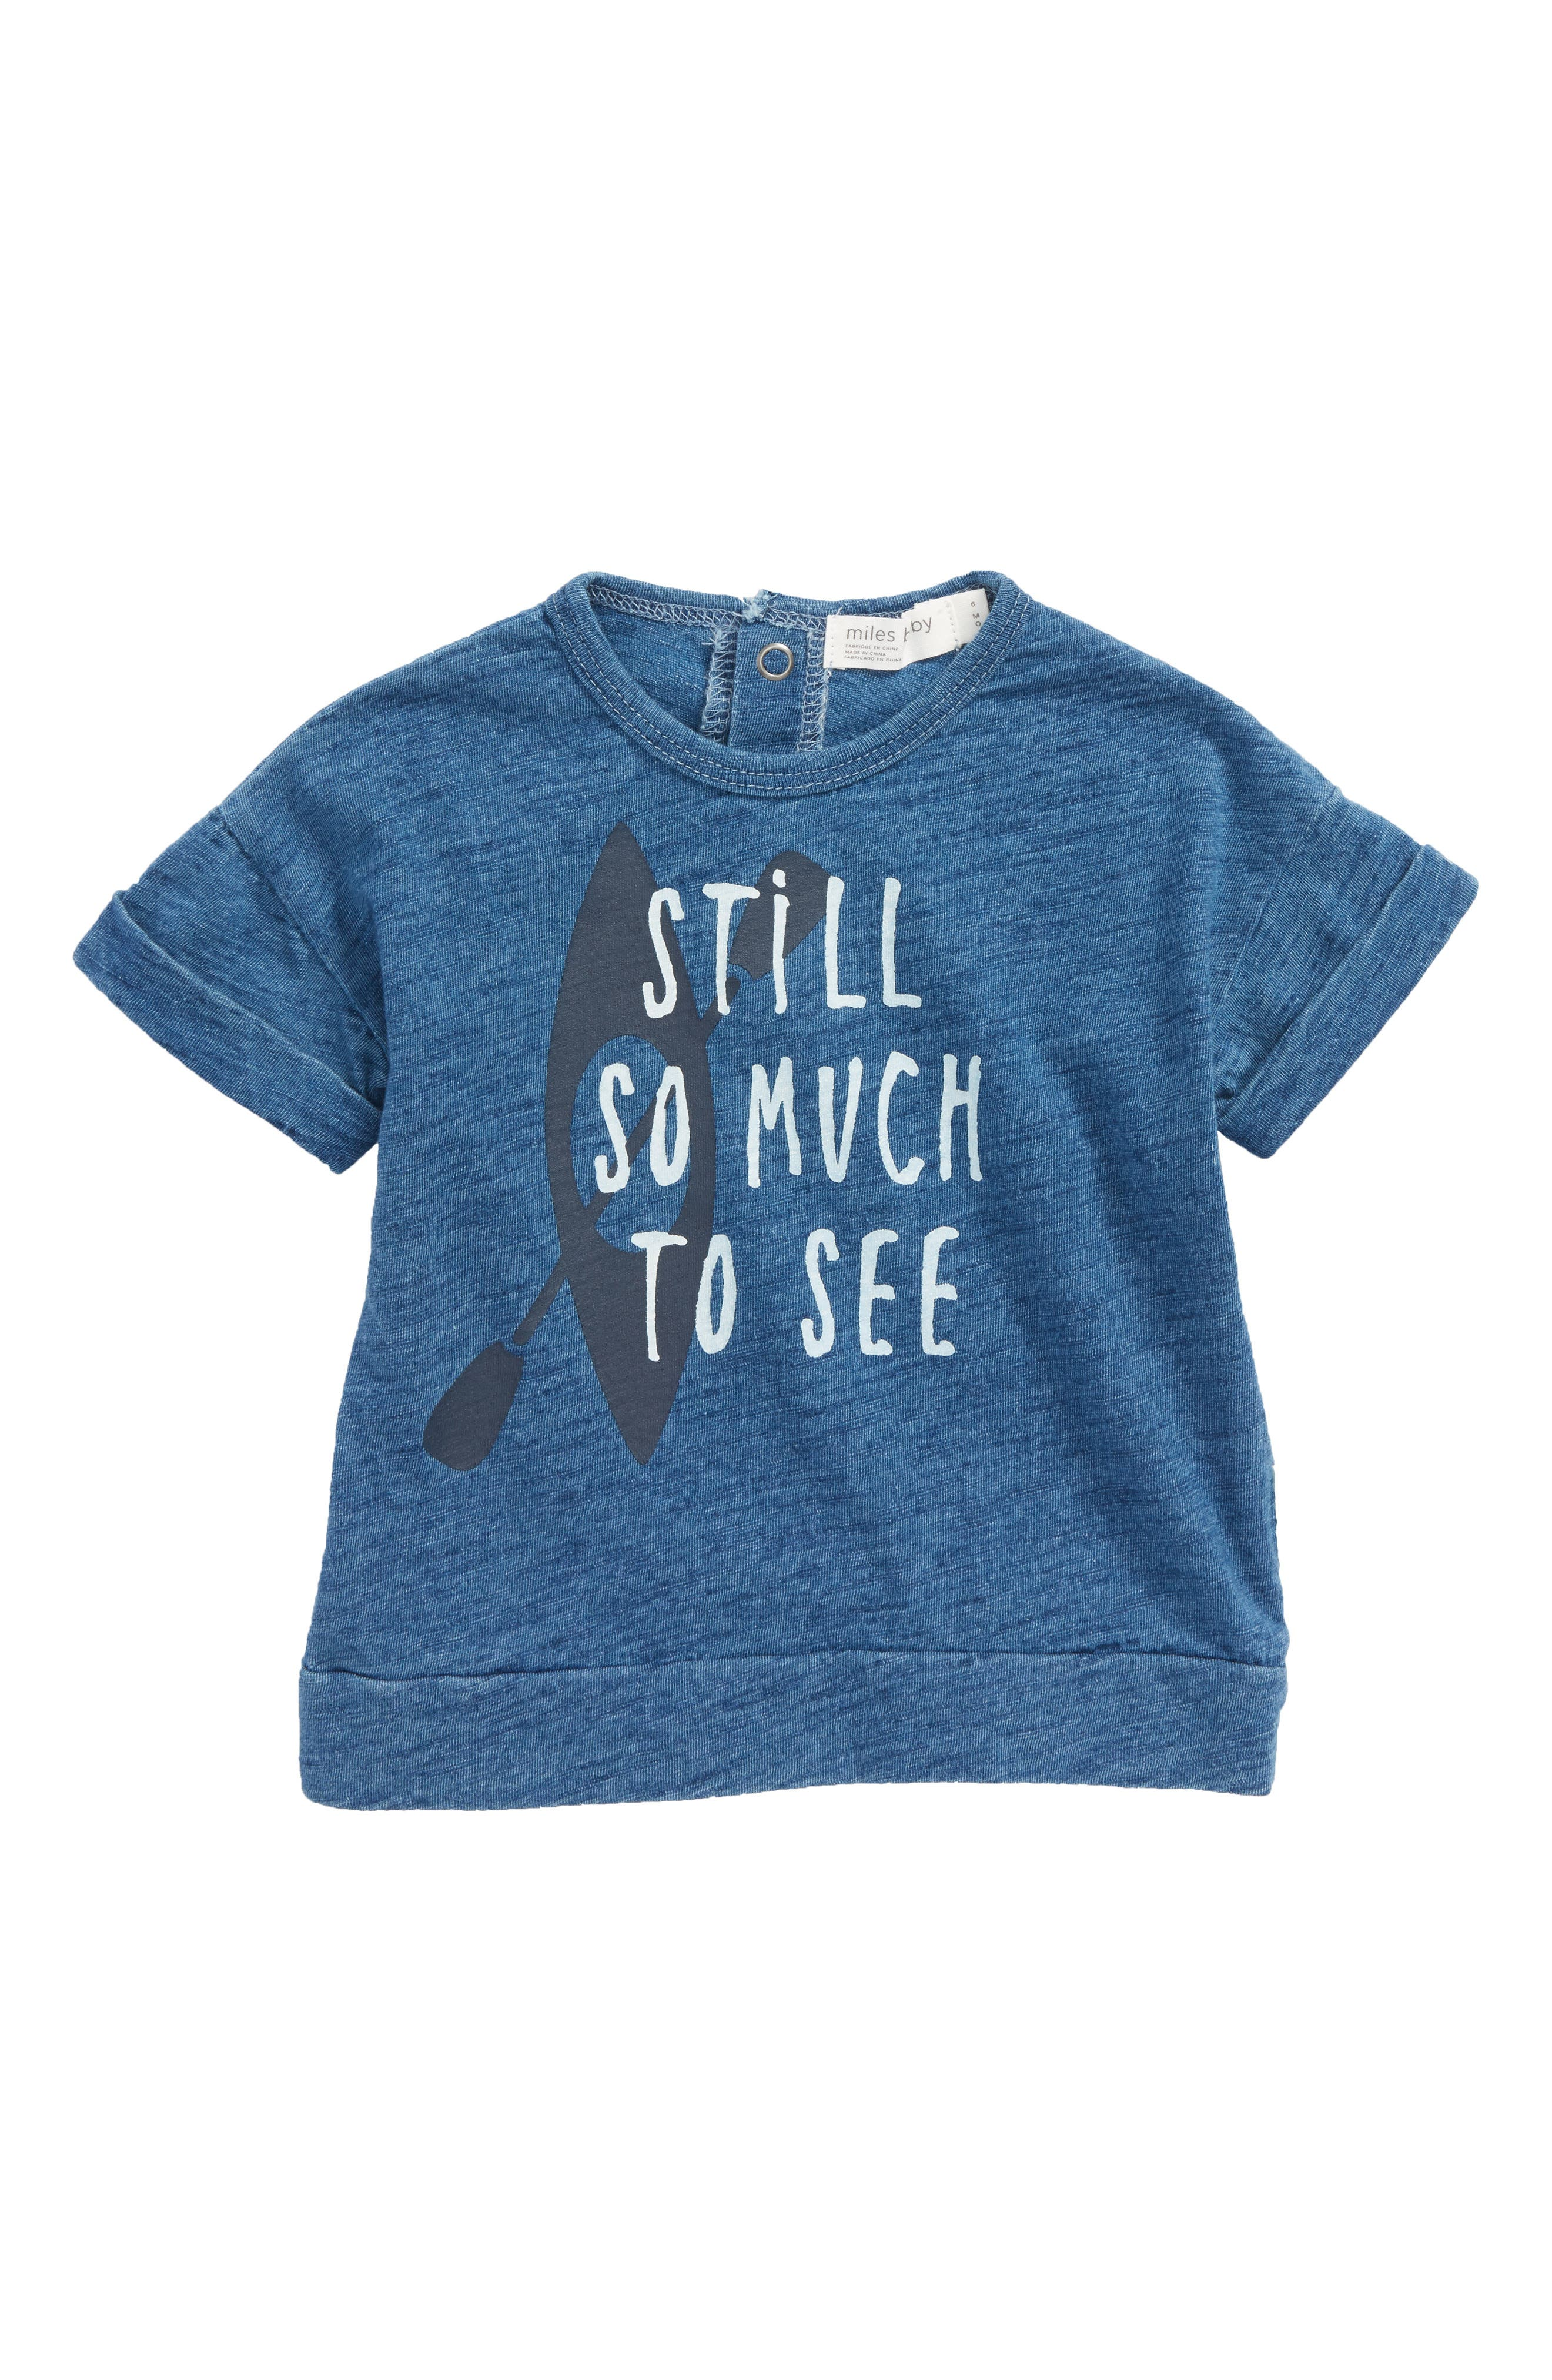 So Much To See T-Shirt,                         Main,                         color, 400